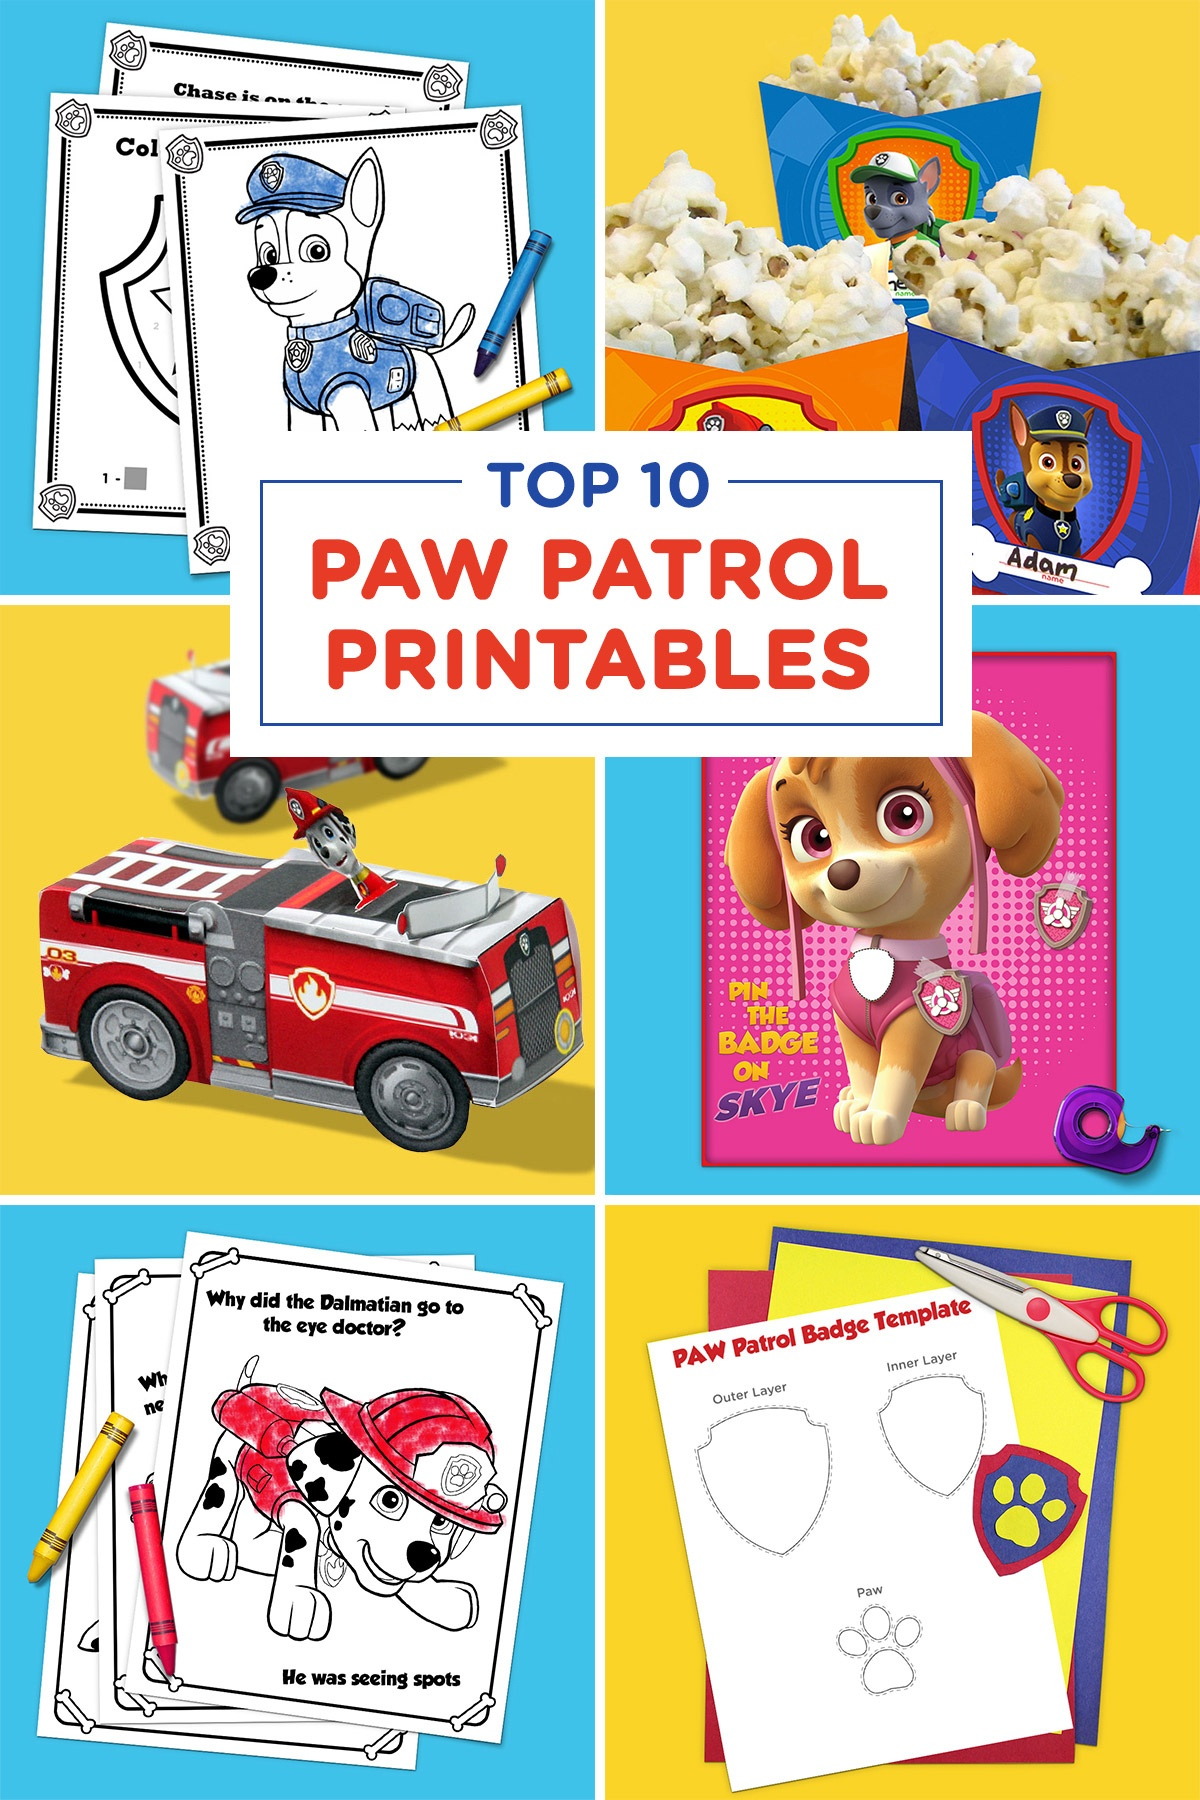 The Top 10 Paw Patrol Printables Of All Time | Nickelodeon Parents - Free Paw Patrol Printables